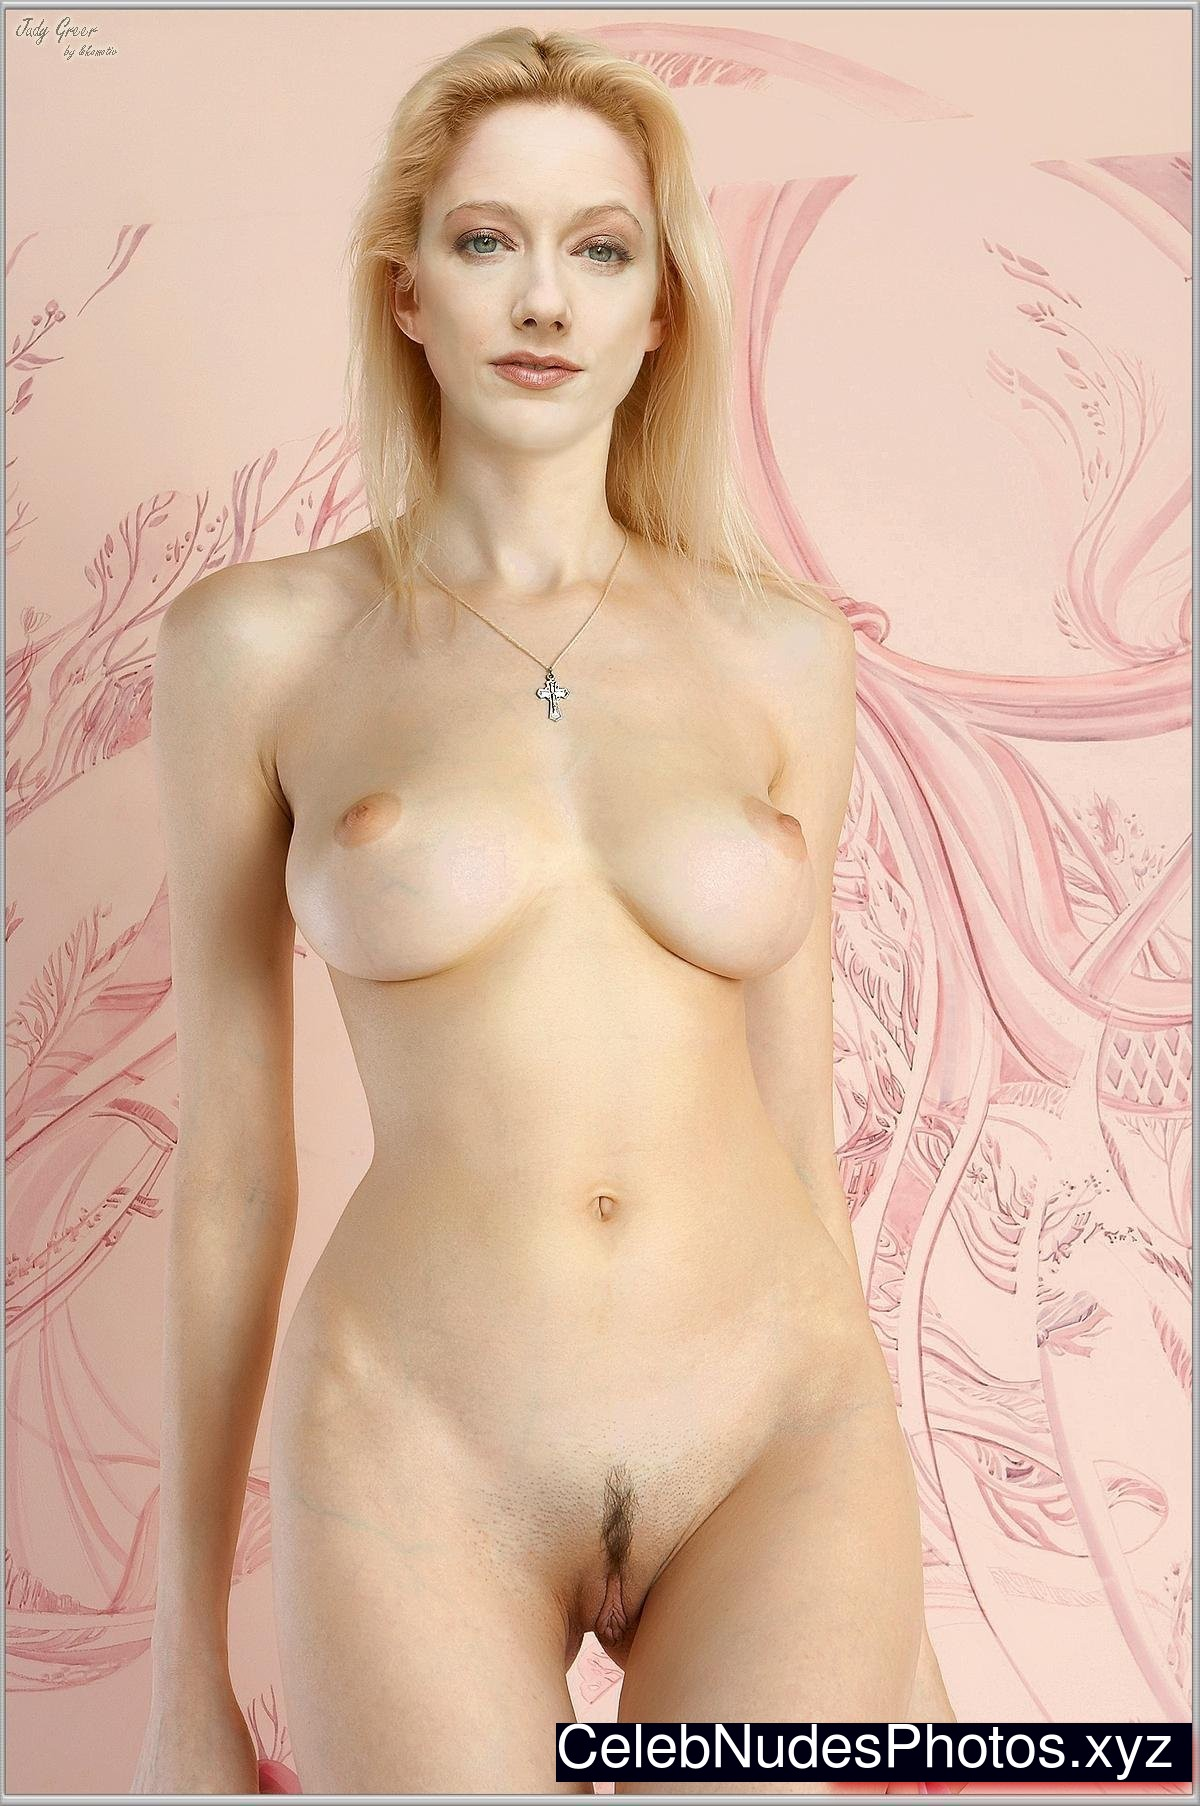 Nude pictures of judy greer agree, very